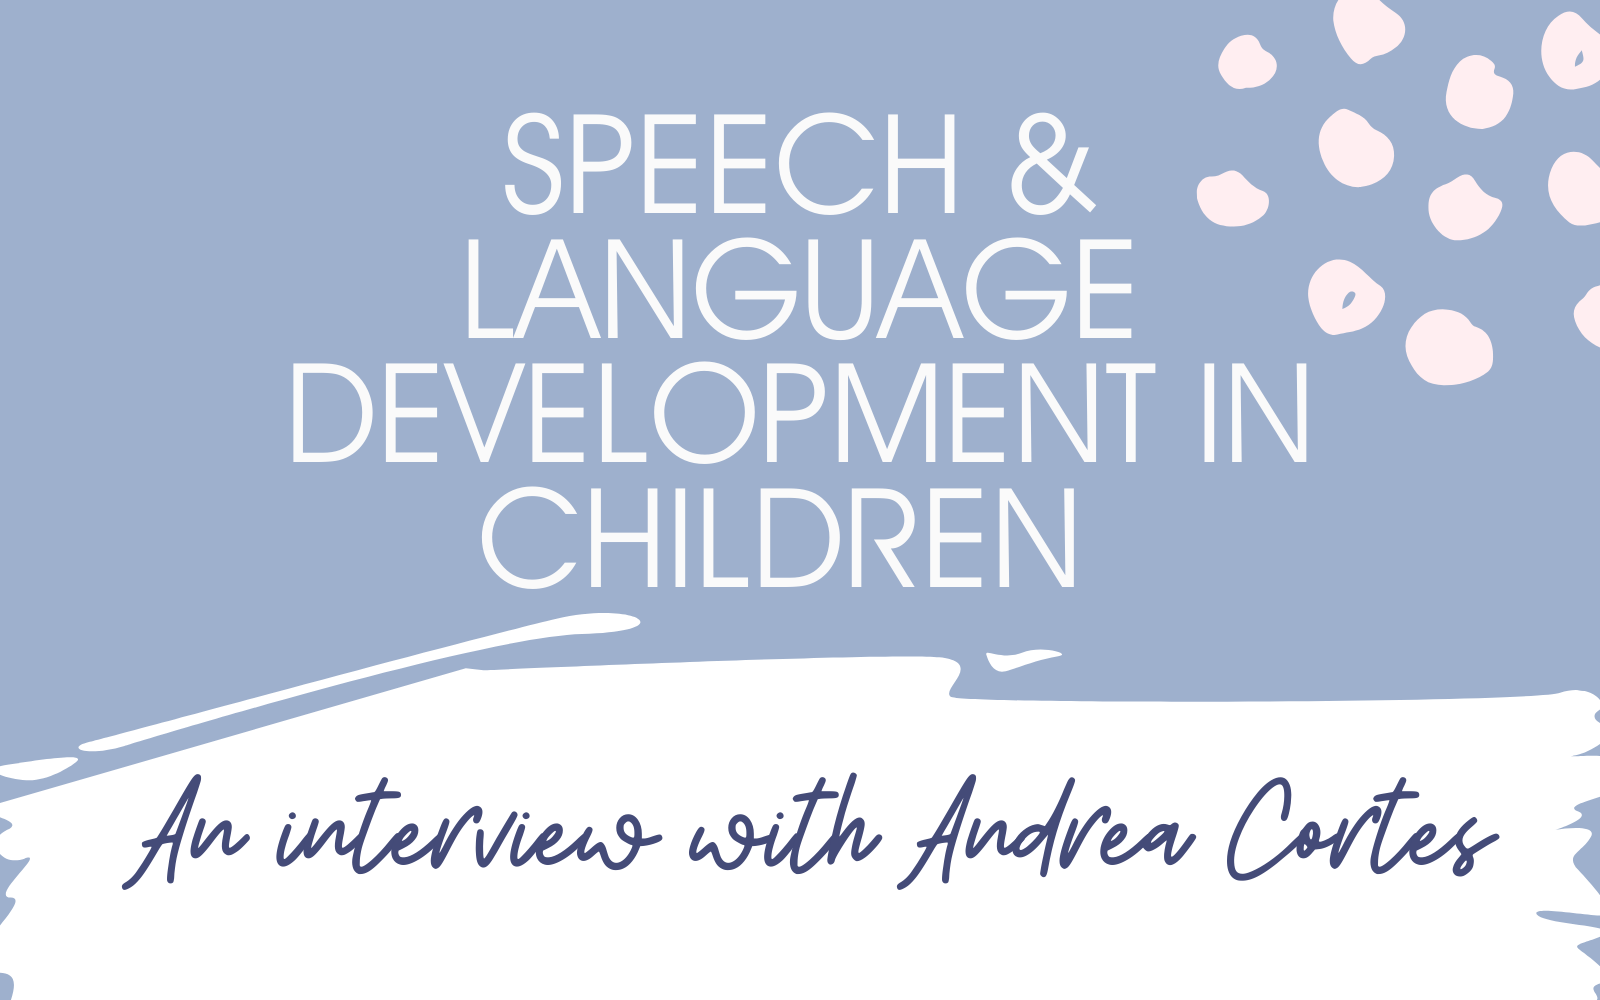 Speech Development in Children: An Interview with Speech & Language Therapist Andrea Cortes